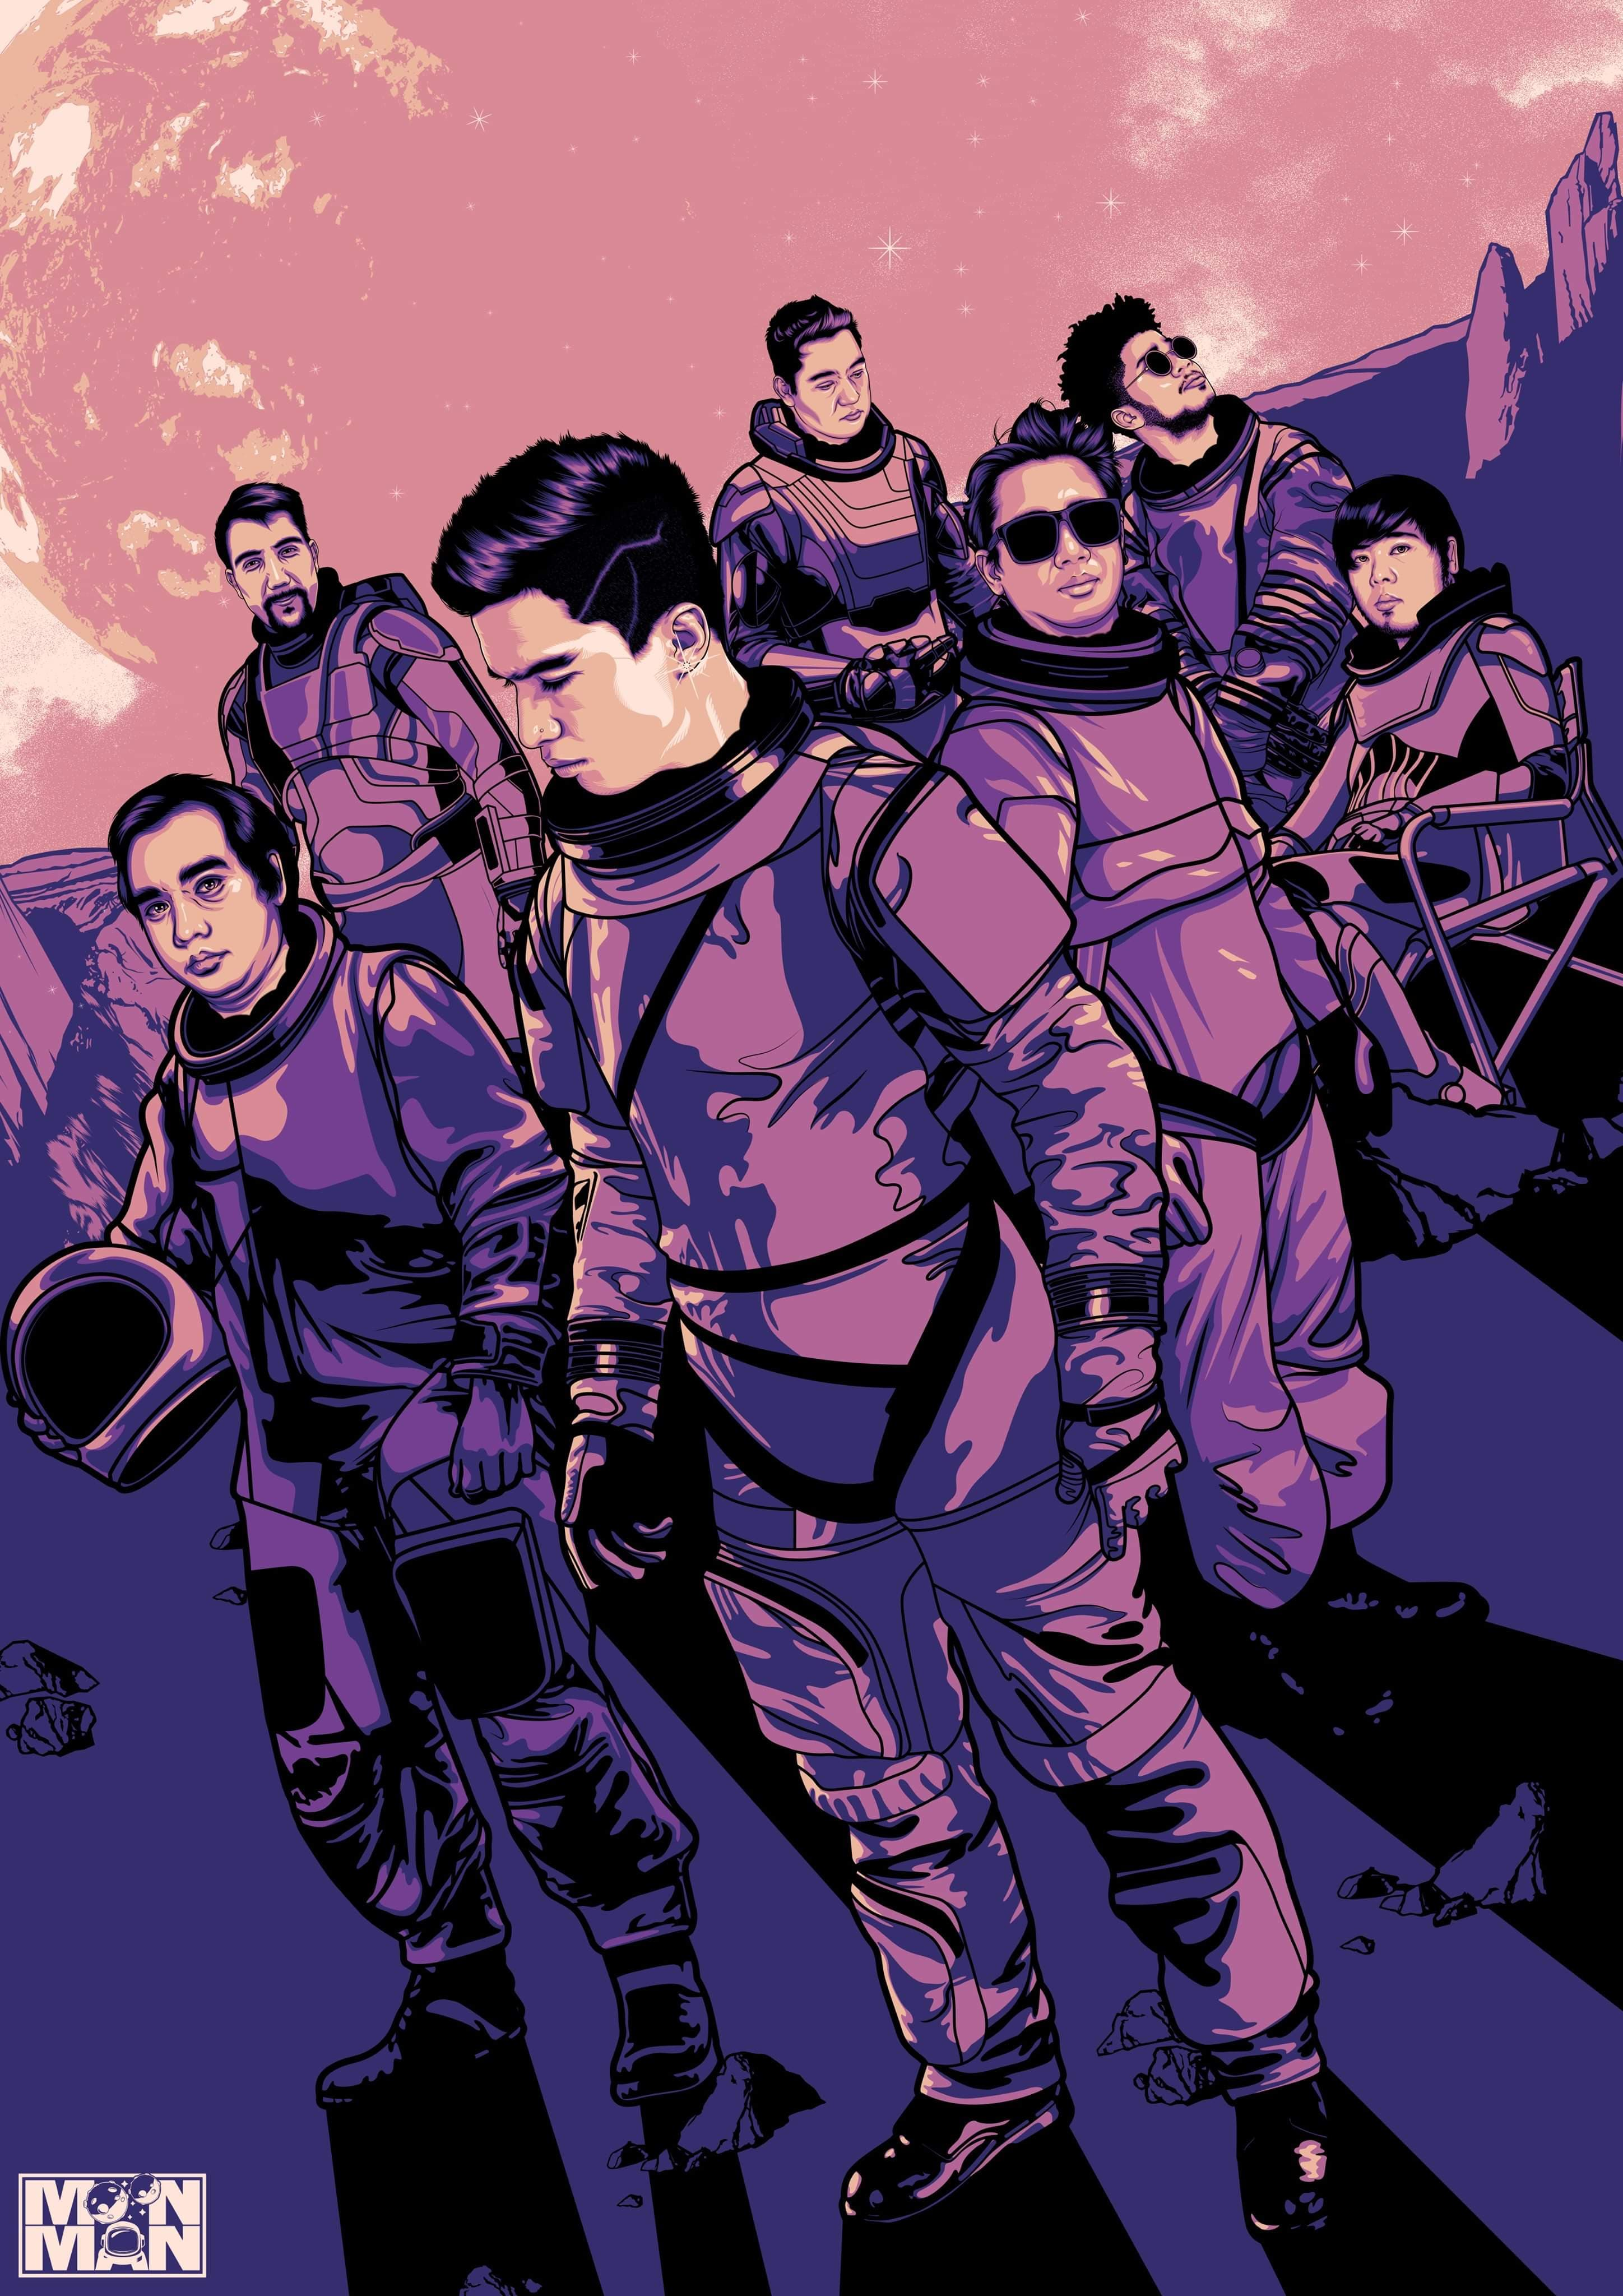 Project Moonman Drops Debut Album Gemini Because Why Not?